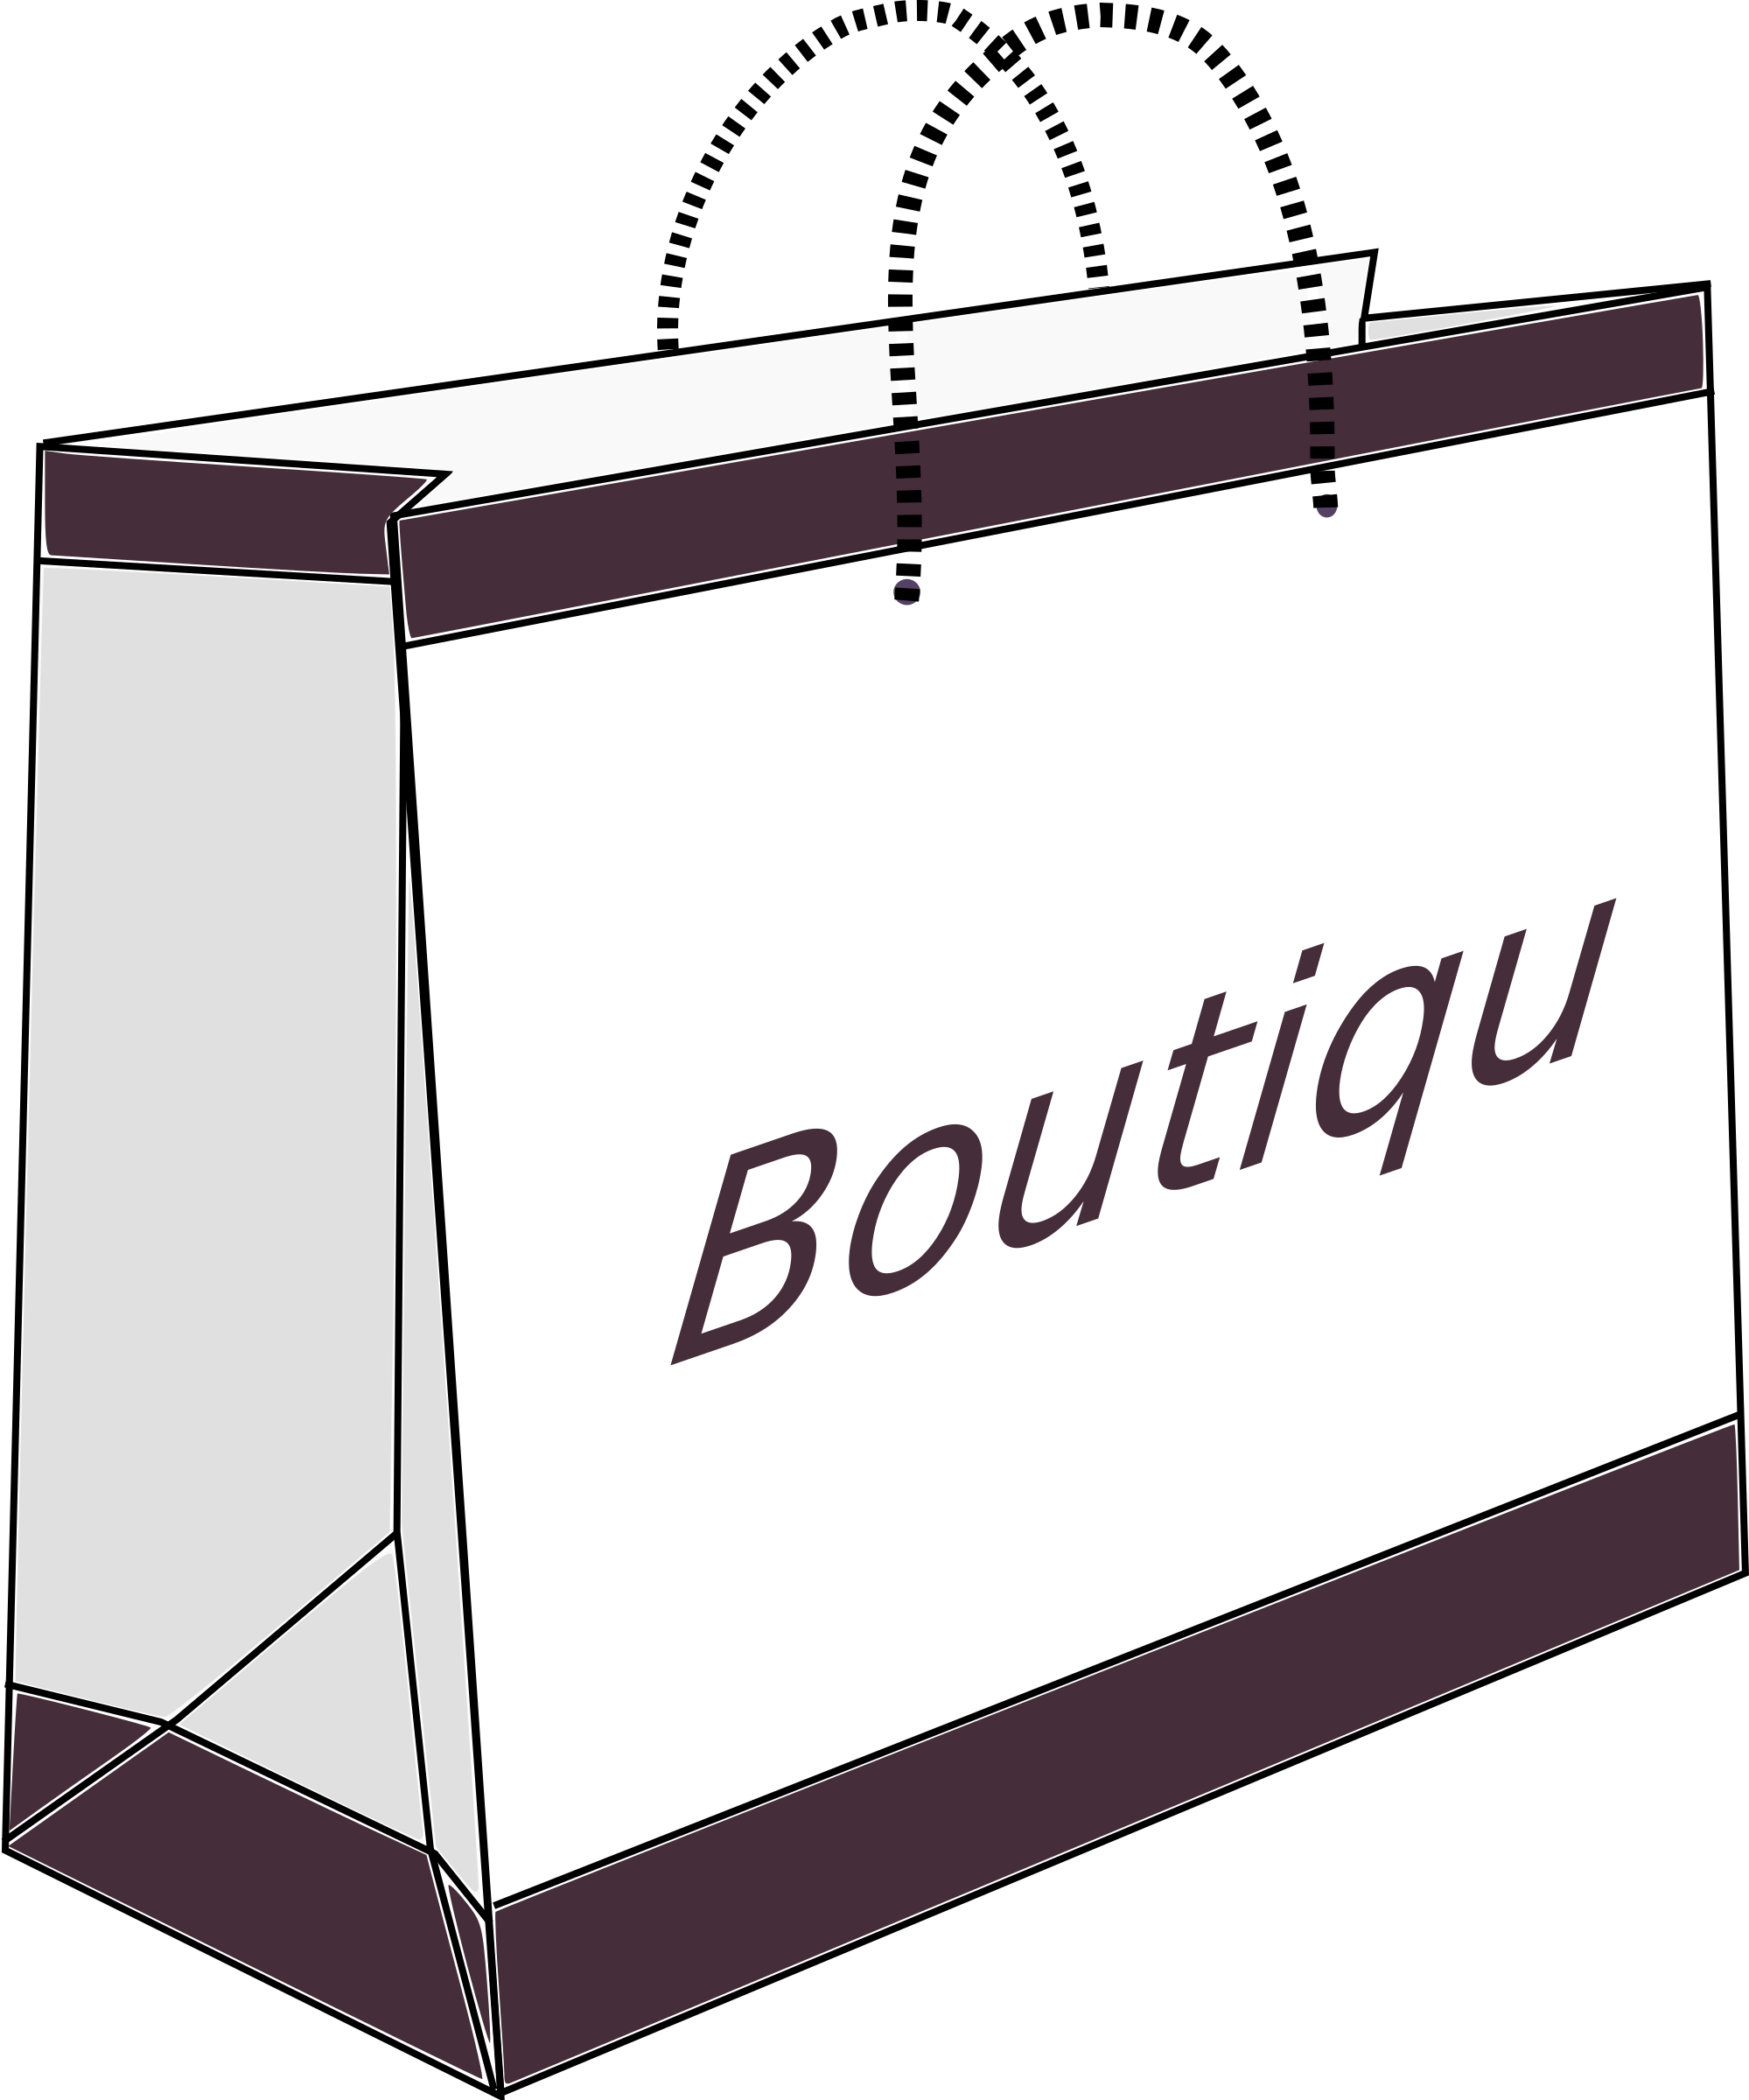 Shopping clipart boutique shopping. Bag big image png